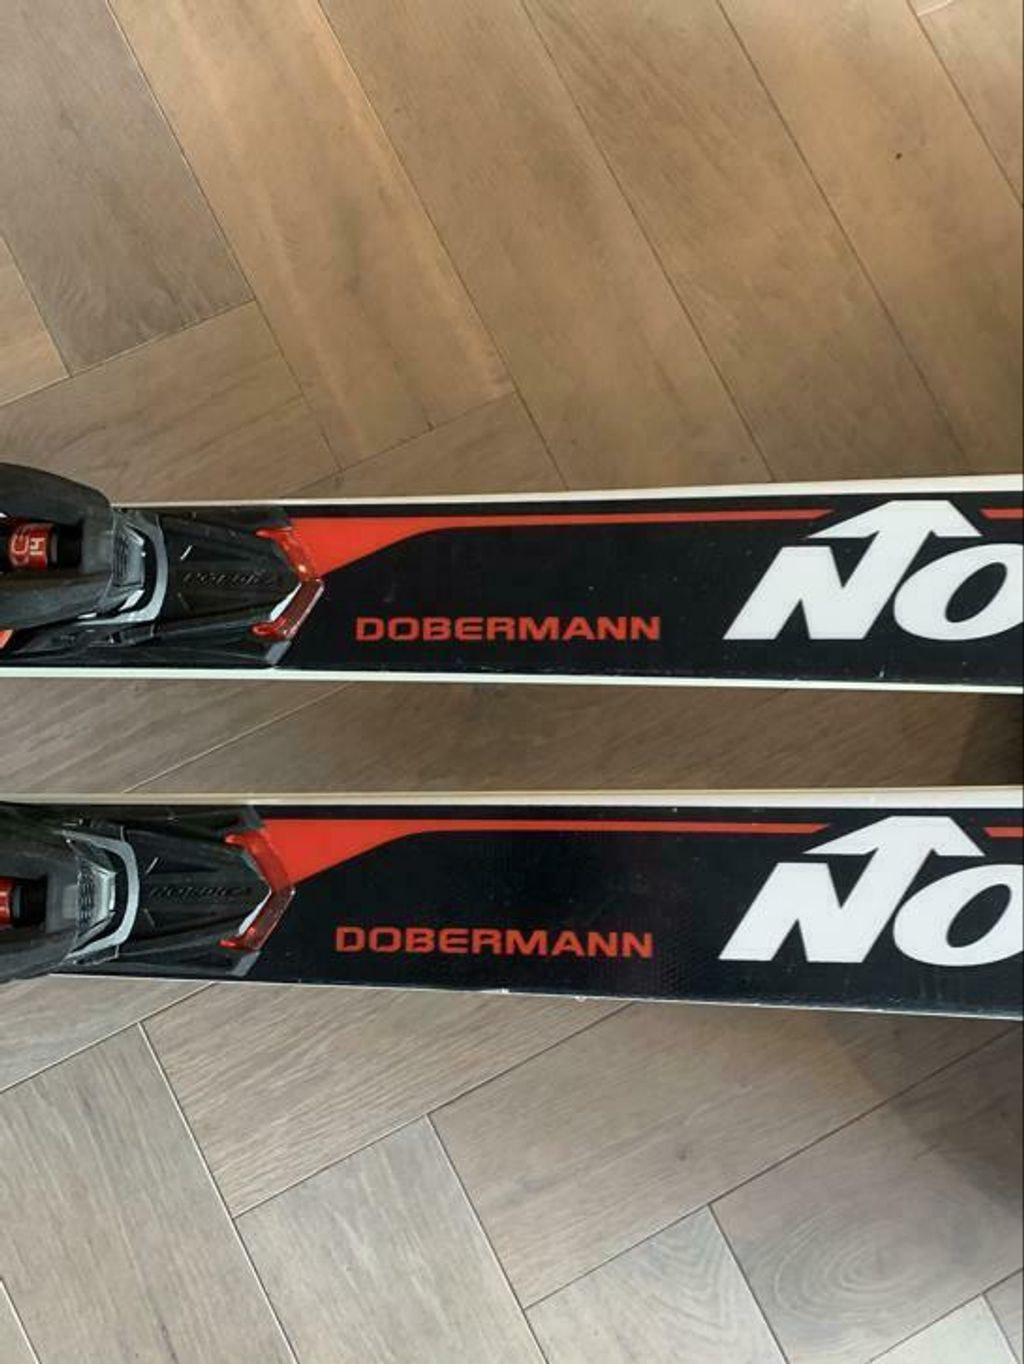 https://cdn.wintersport.nl/forum/26/df63e0d91c7b846476d853d0...